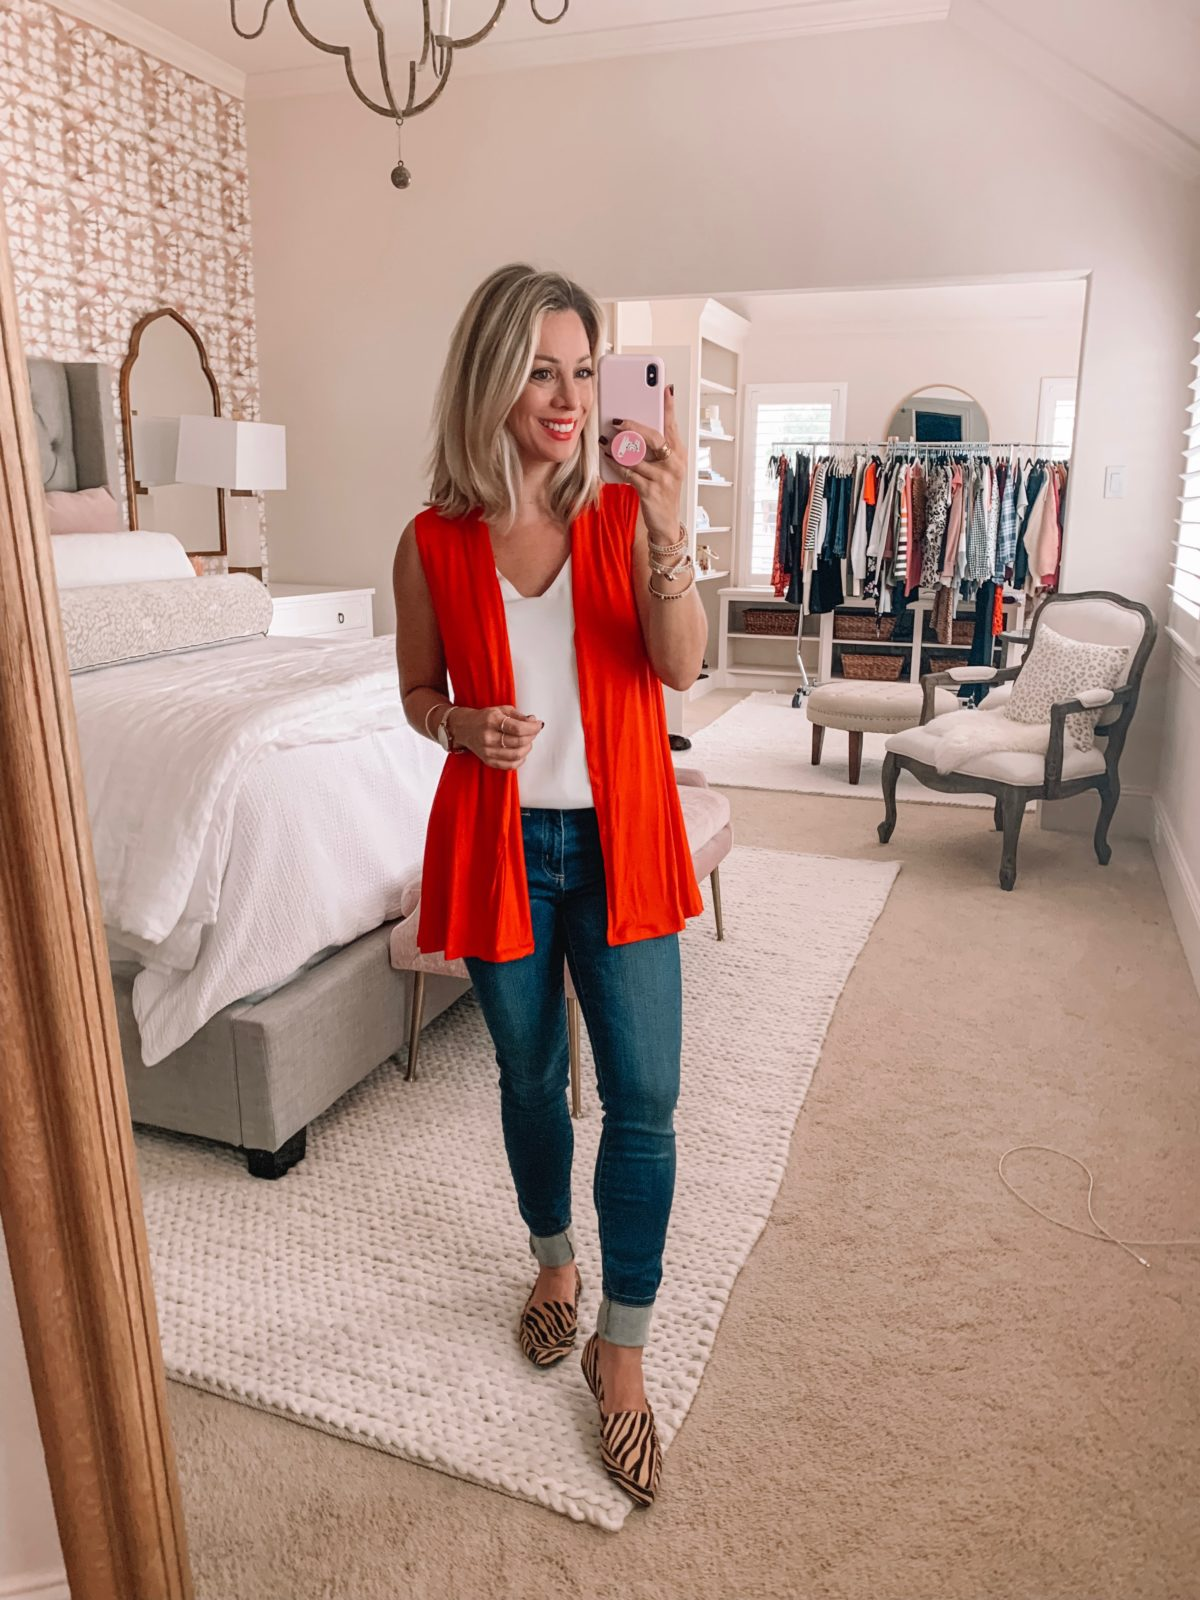 Amazon fashion haul, red cardigan and jeans